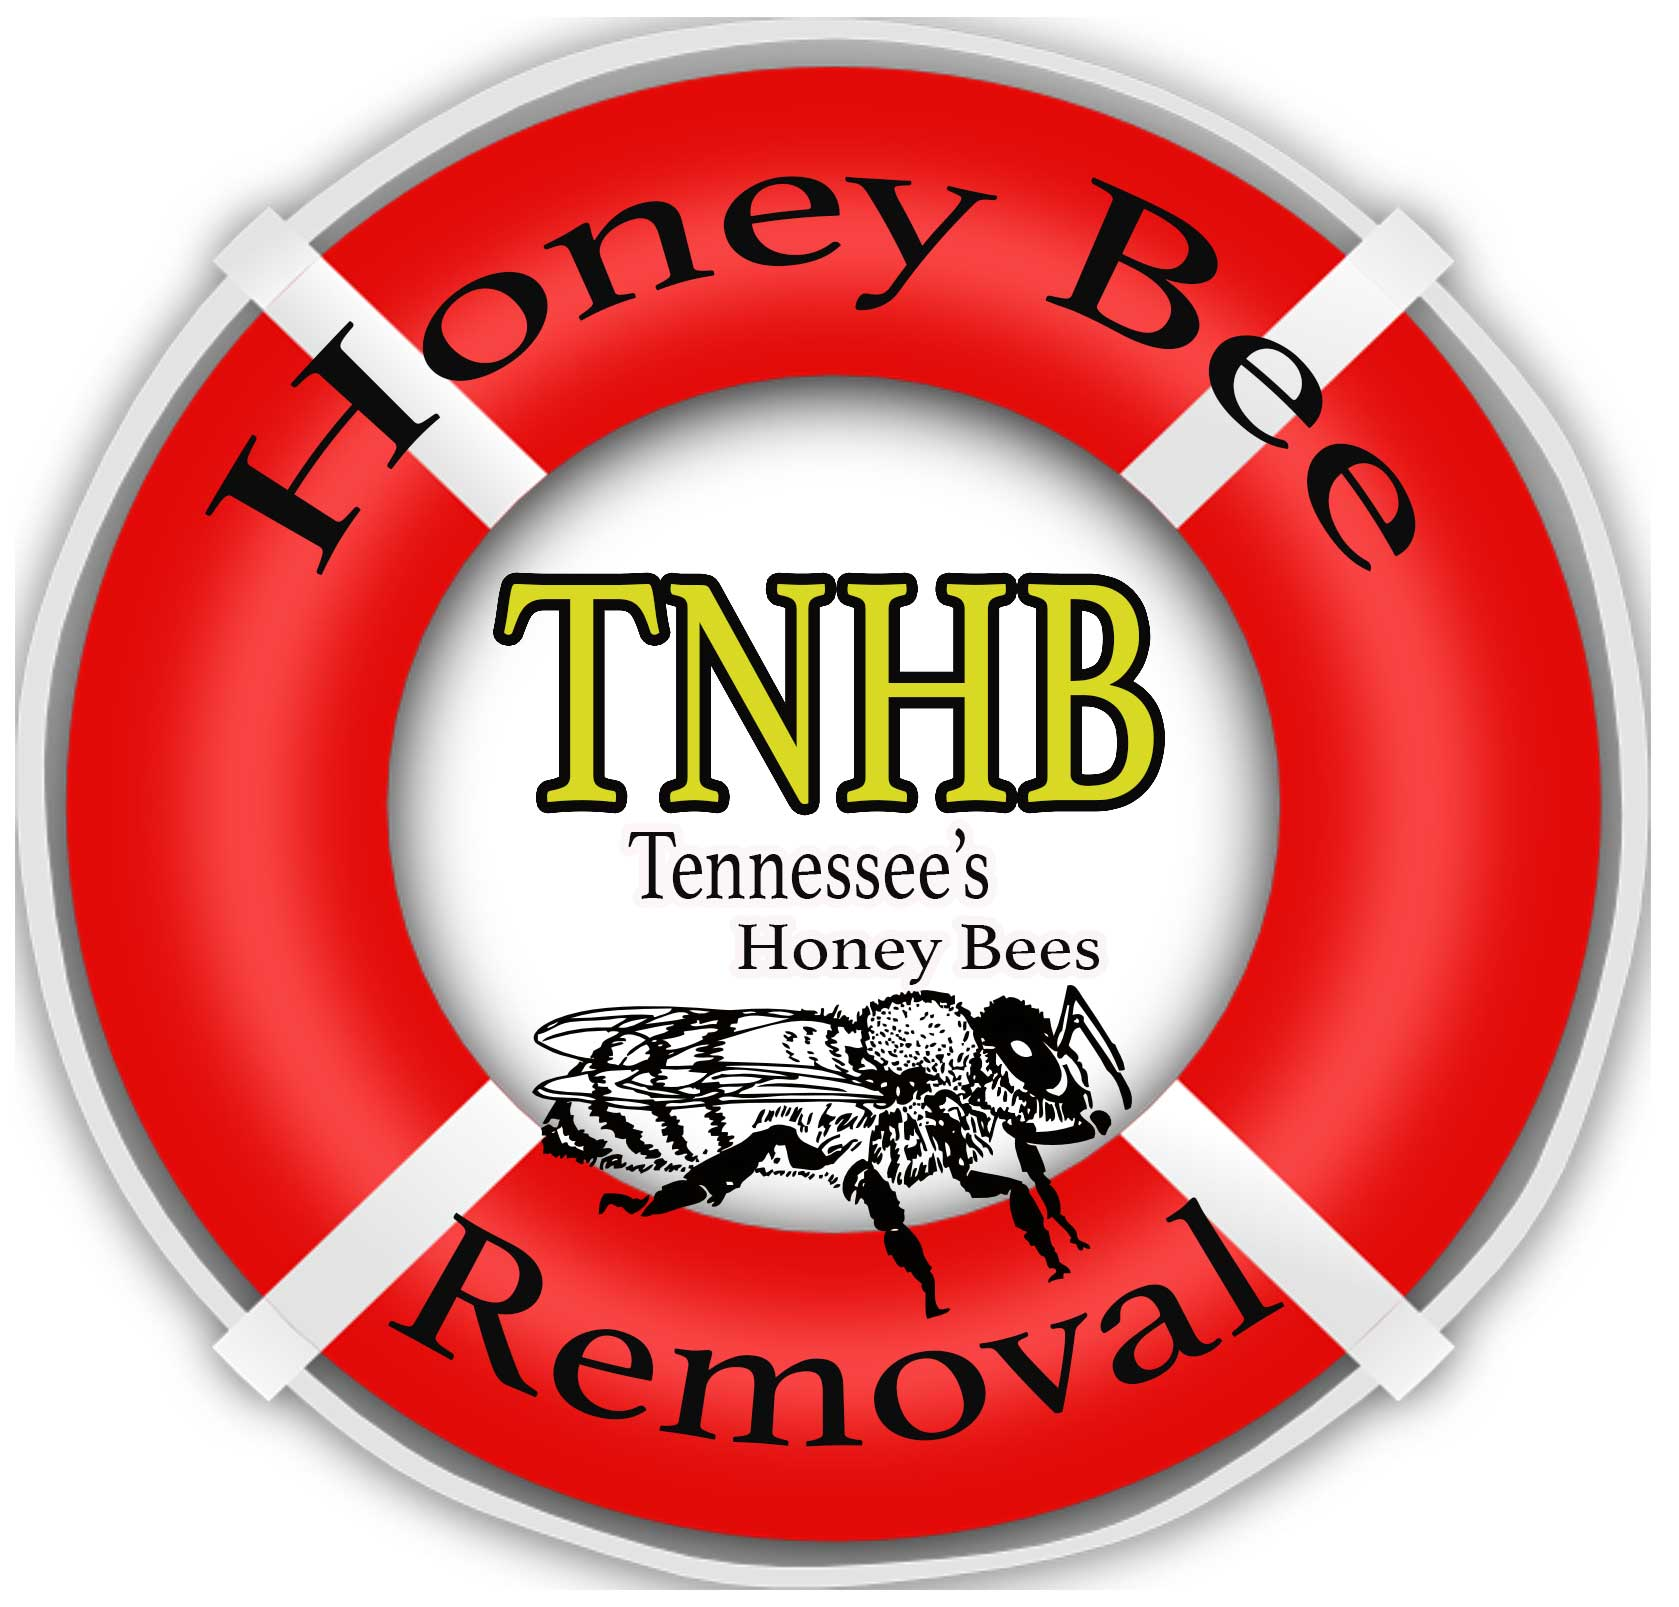 Tennessee's Honey Bees - Honey Bee Rescue Services